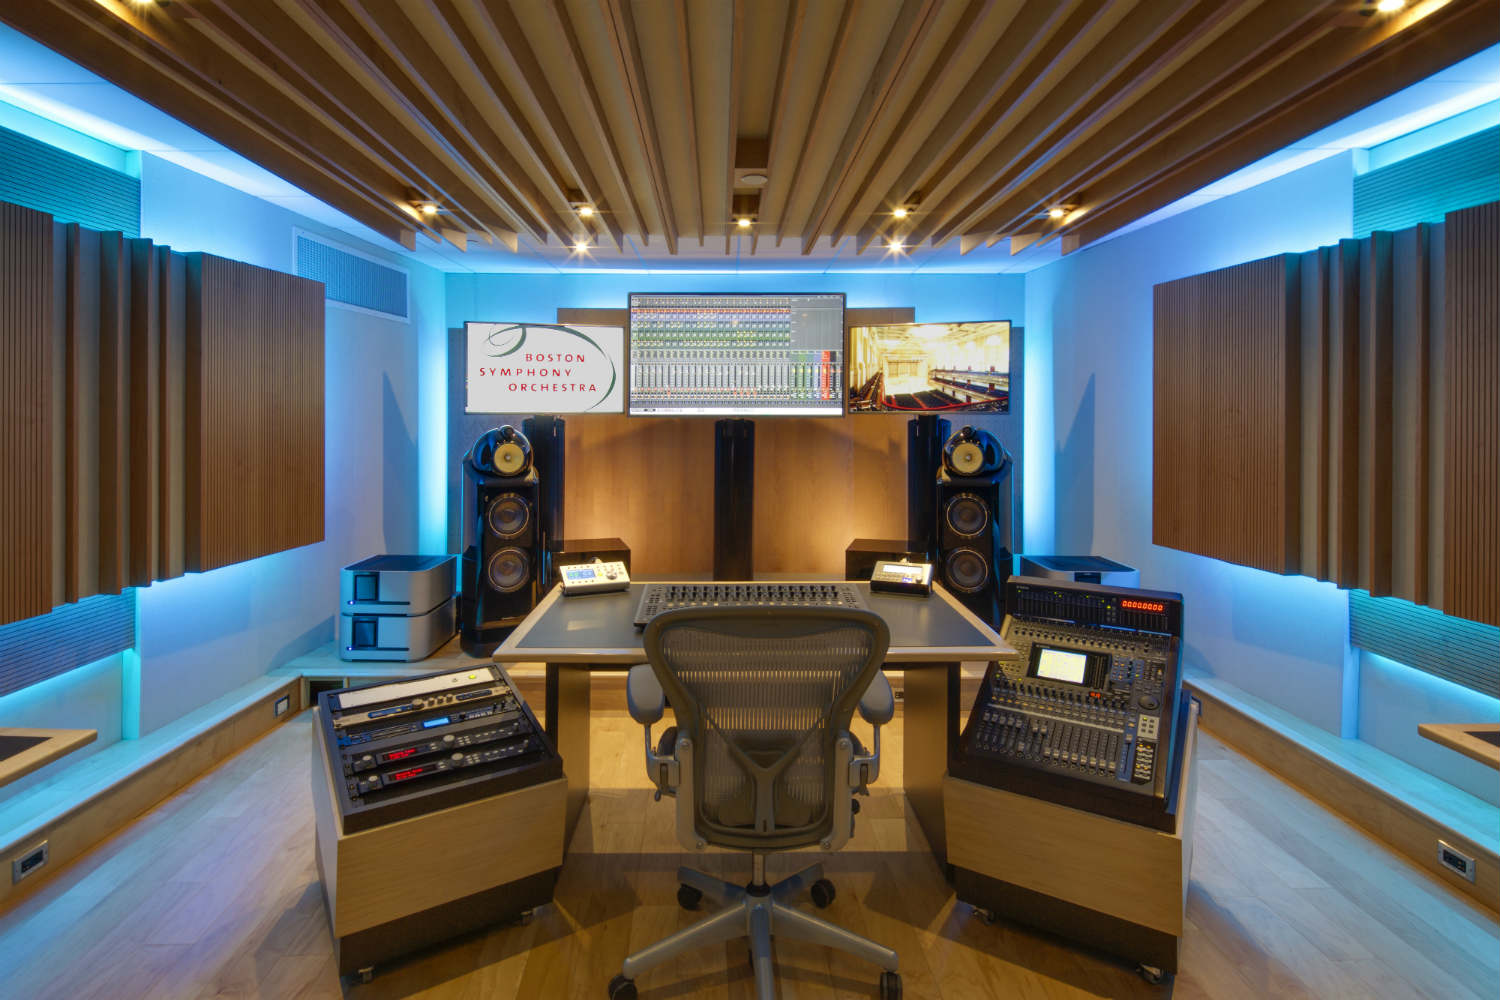 Boston Symphony Orchestra Control Room WSDG